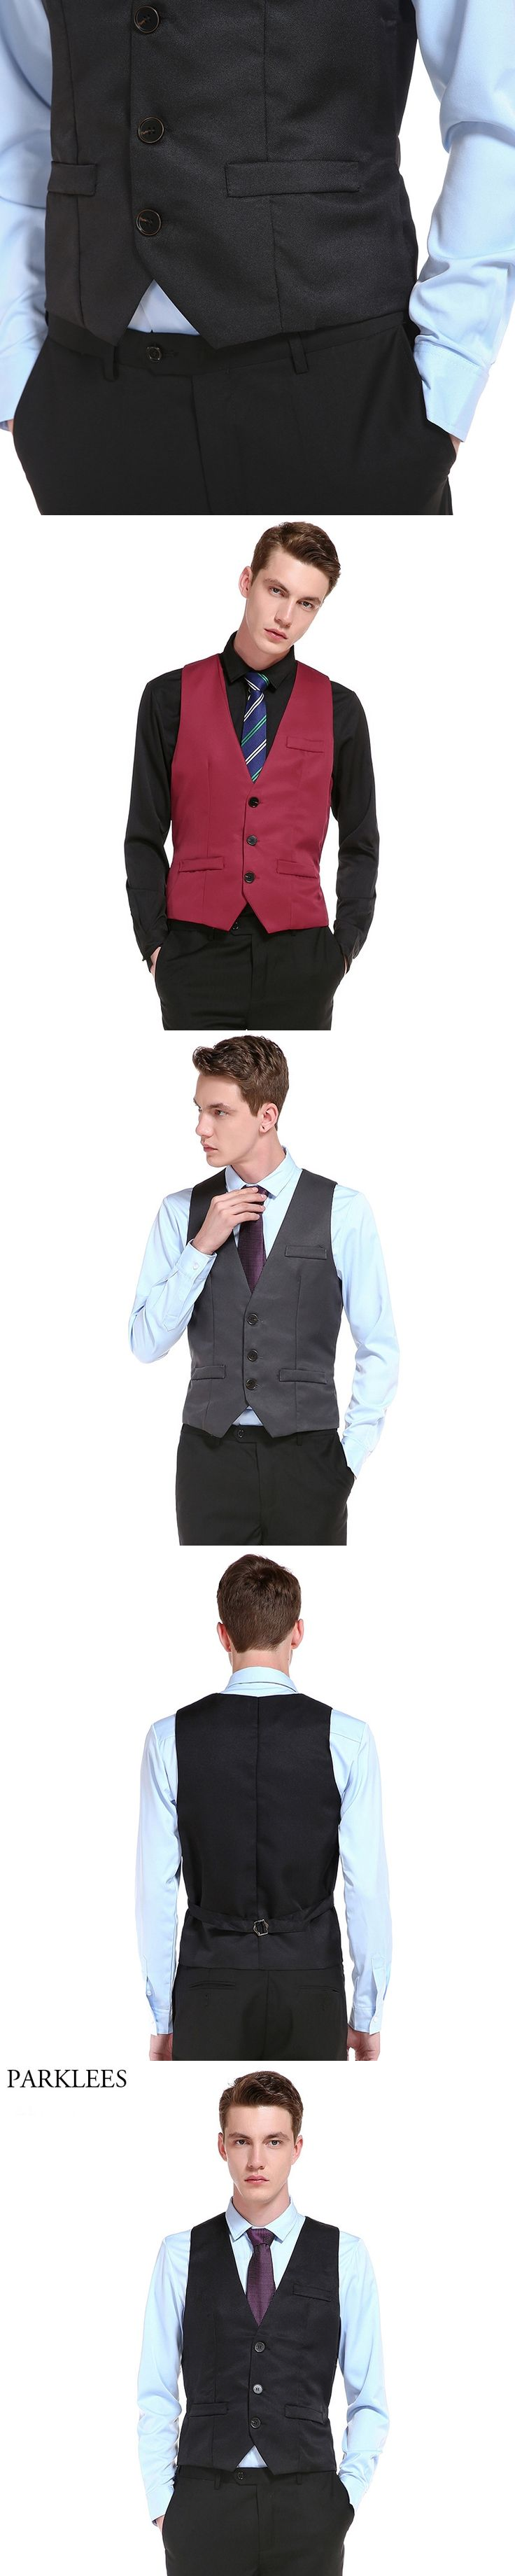 New Men Suit Vest Gilet Homme 2017 Fashion Business Casual Wedding Marriage Slim Fit Mens Vests Single Breasted Men Waistcoat